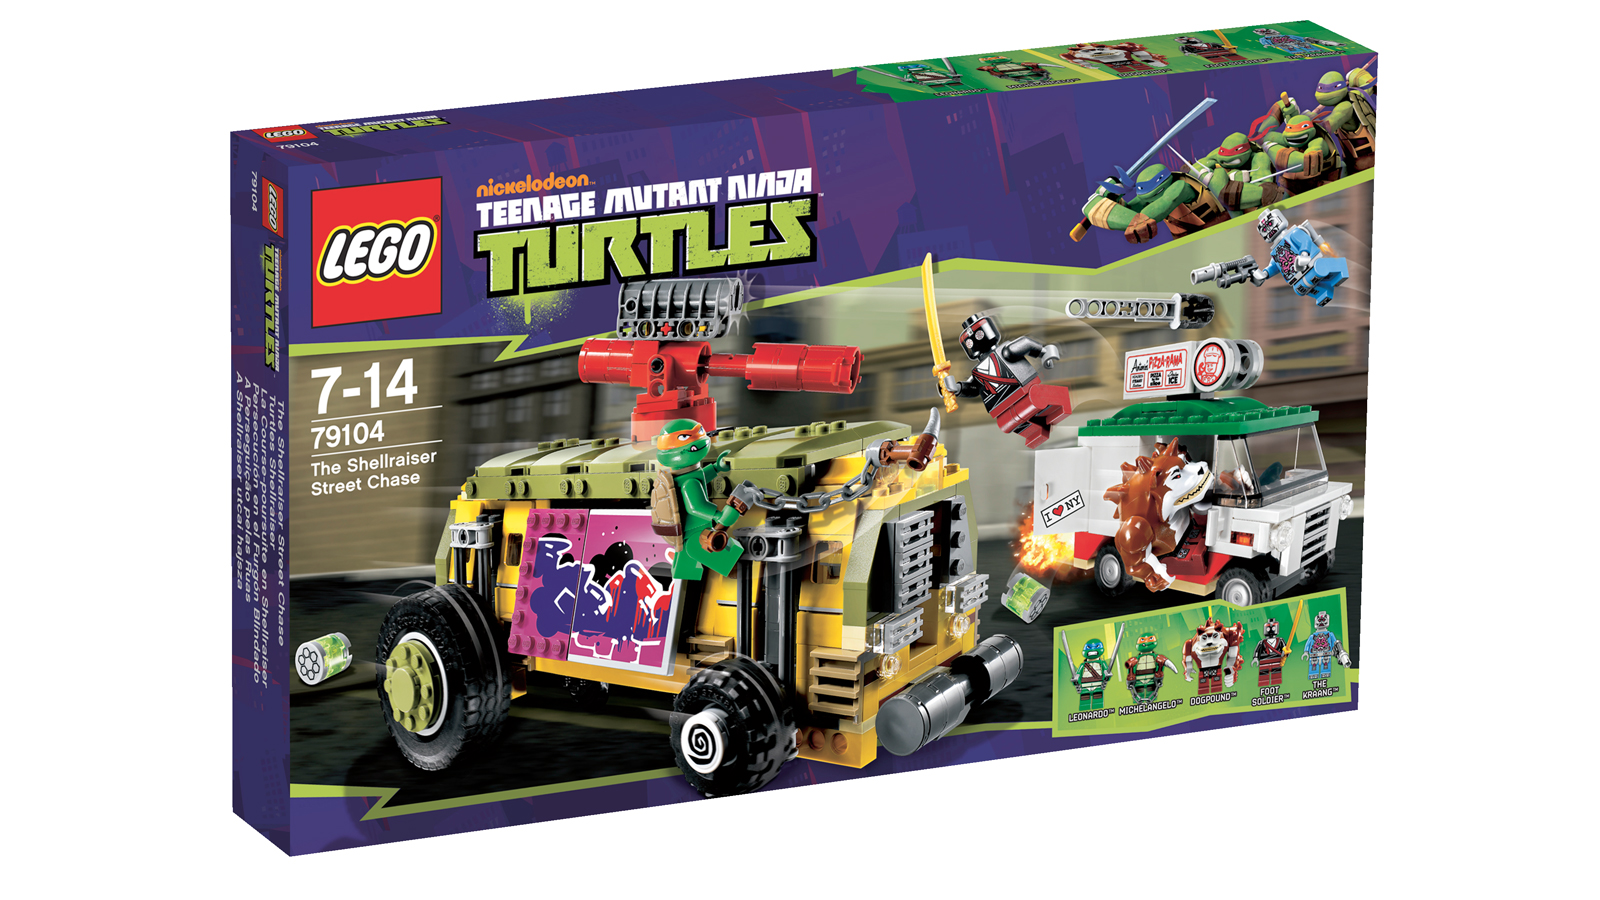 a pizza truck and five mini figures among them donatello and michelangelo you will have to wait for leonardo and raphael in future sets which sucks